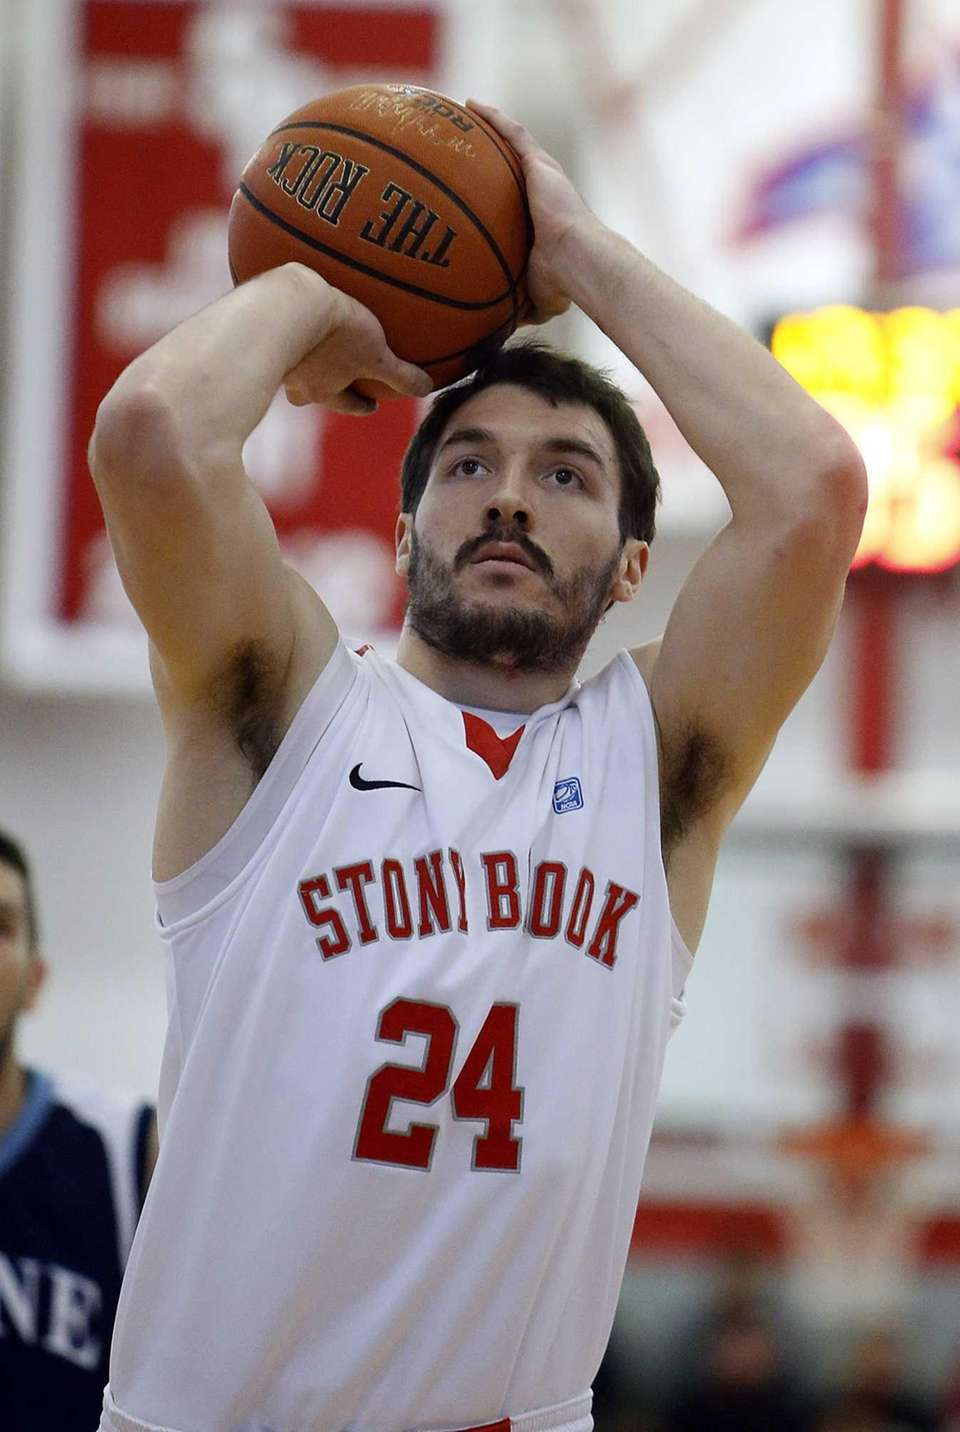 Stony Brook's Tommy Brenton shoots from the foul